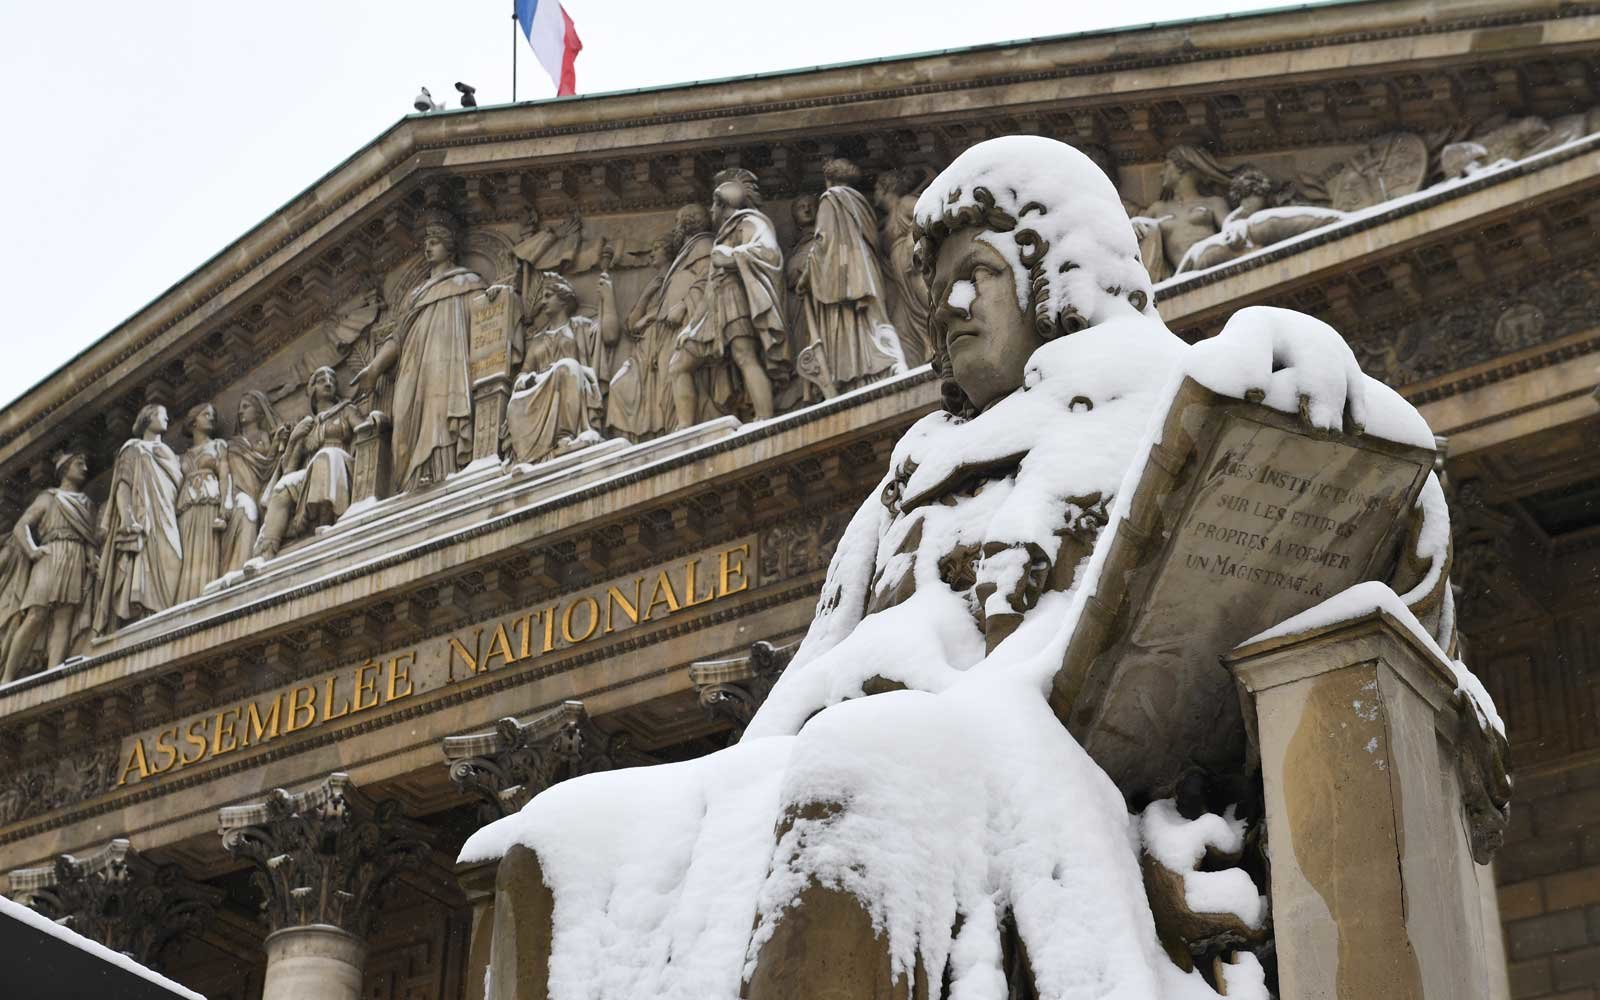 A snow covered statue is pictured in front of the National Assembly, on February 7, 2018 in Paris, following heavy snowfall.